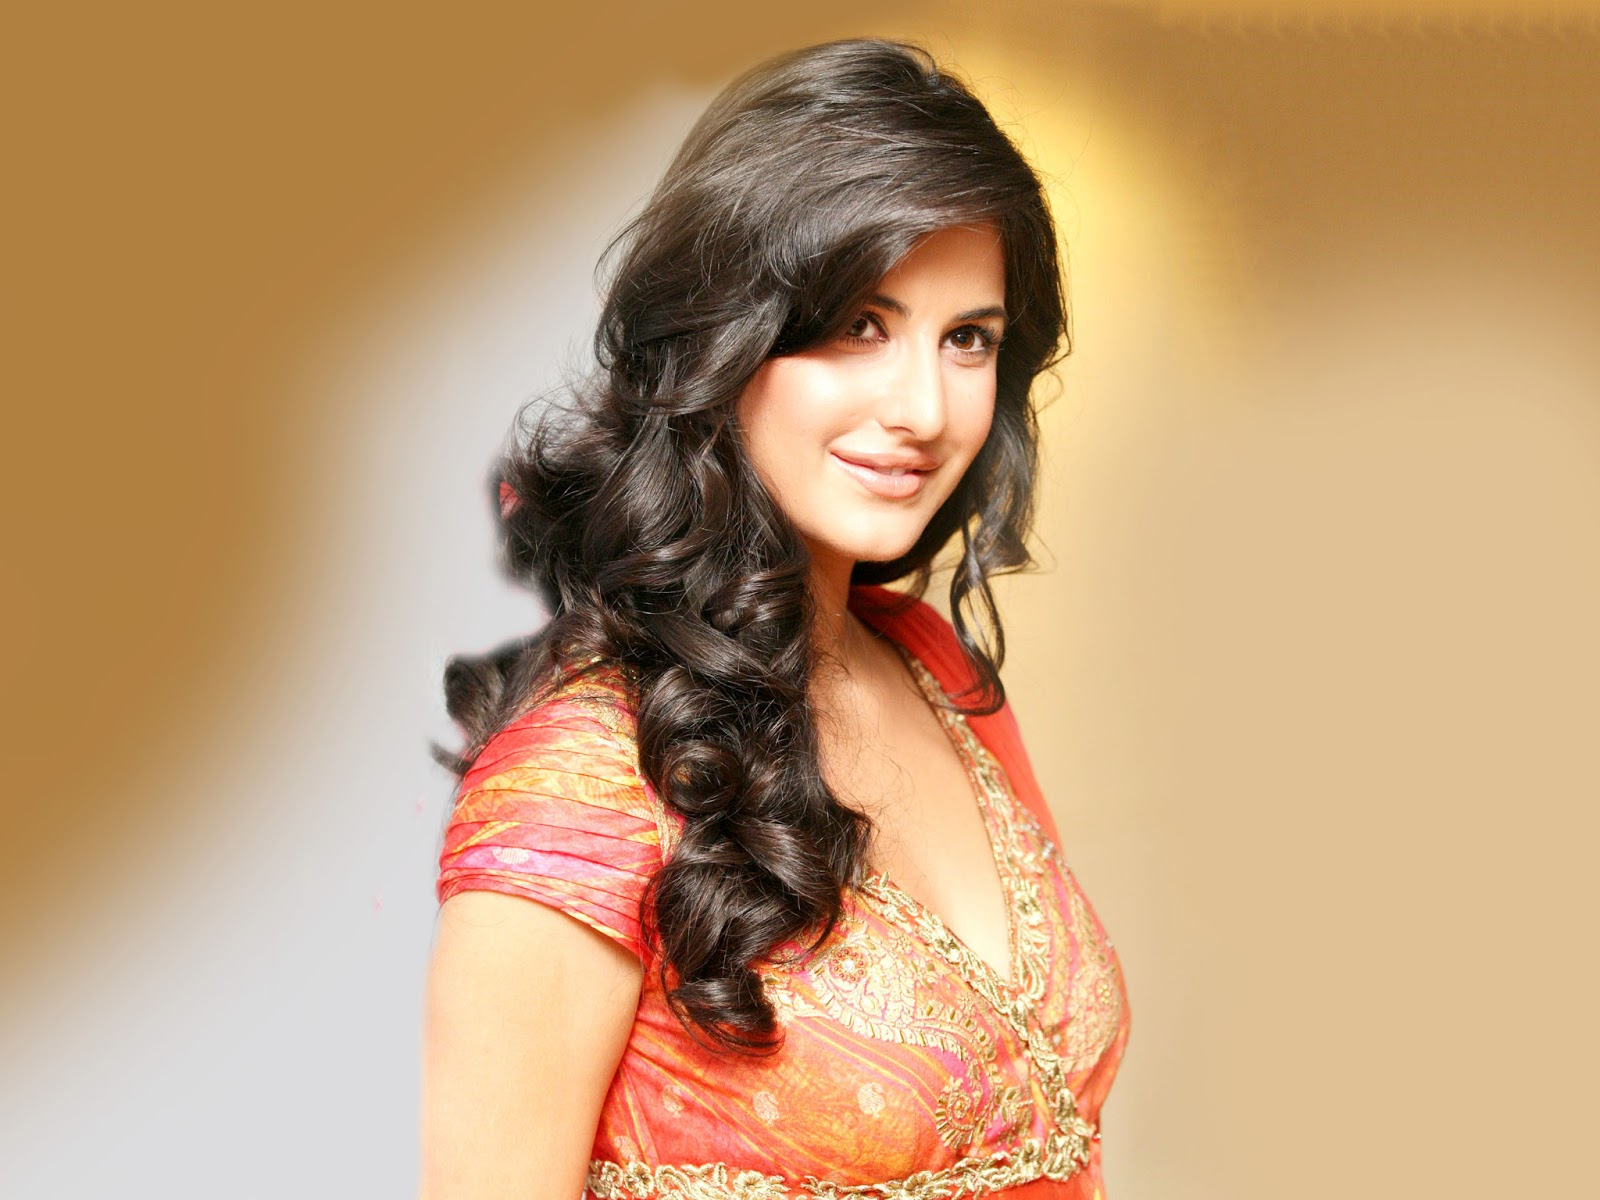 Katrina kaif new hd hot wallpapers 2013 world celebrities hd wallpapers - Desi actress wallpaper ...